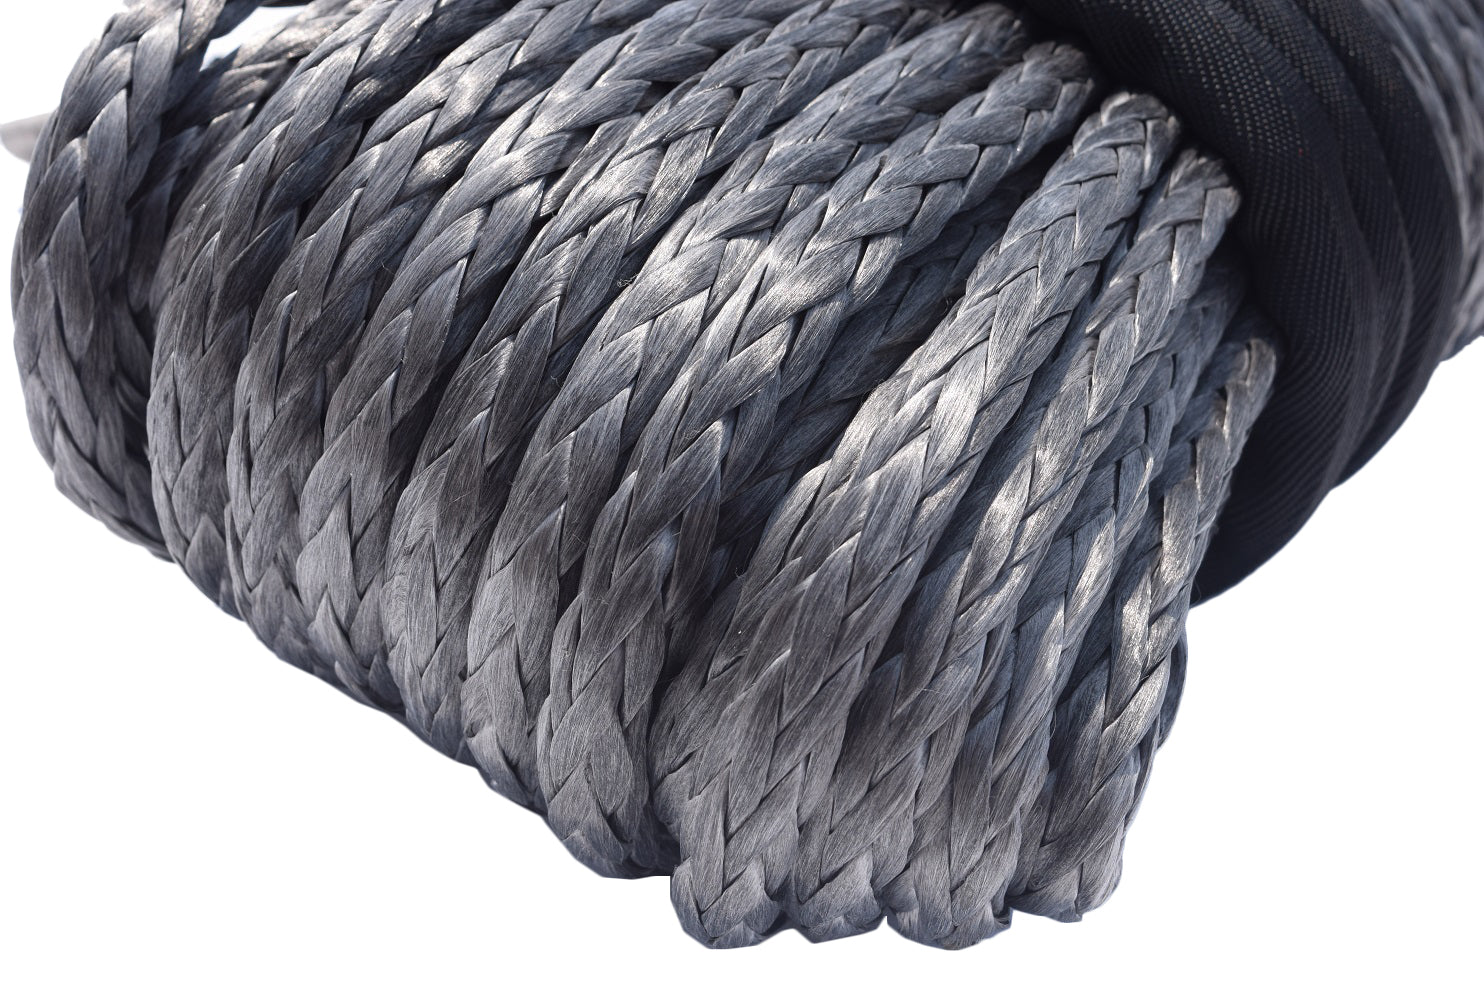 Grey 12mm*45m Synthetic Winch Rope with Hook,Plasma Winch Cable,4×4 Recovery Winch Cable for Accessaries,UHMWPE Rope